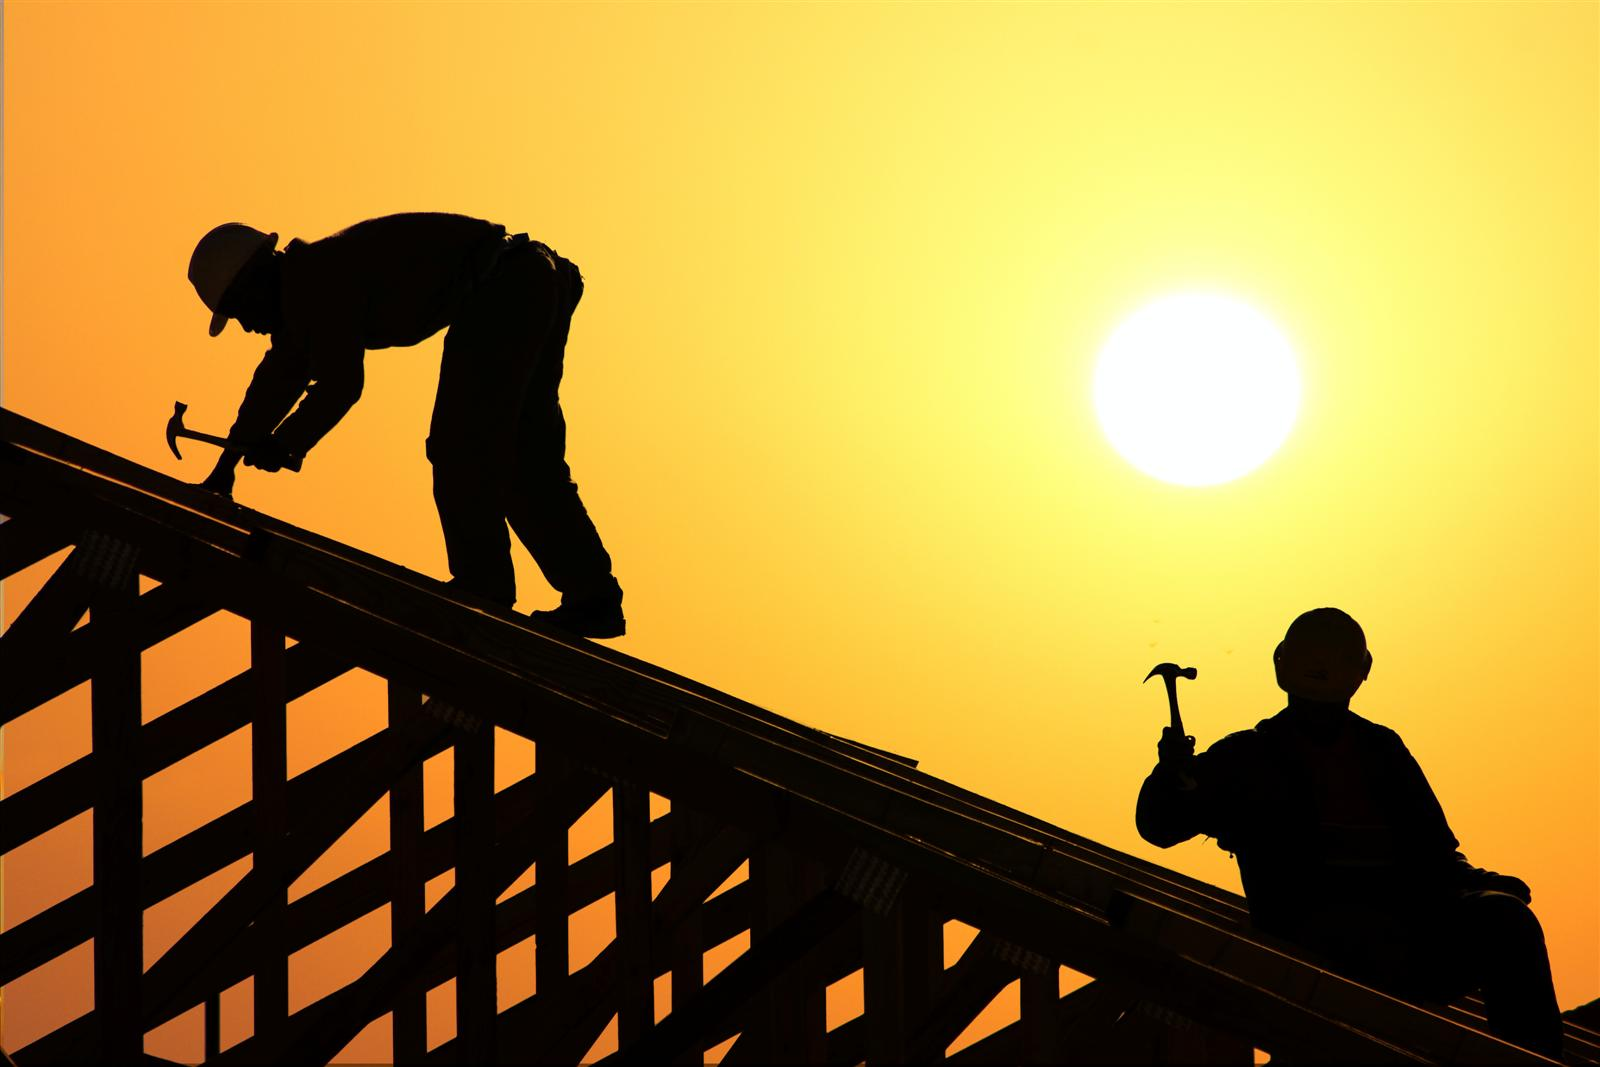 Roof clipart contractor #9